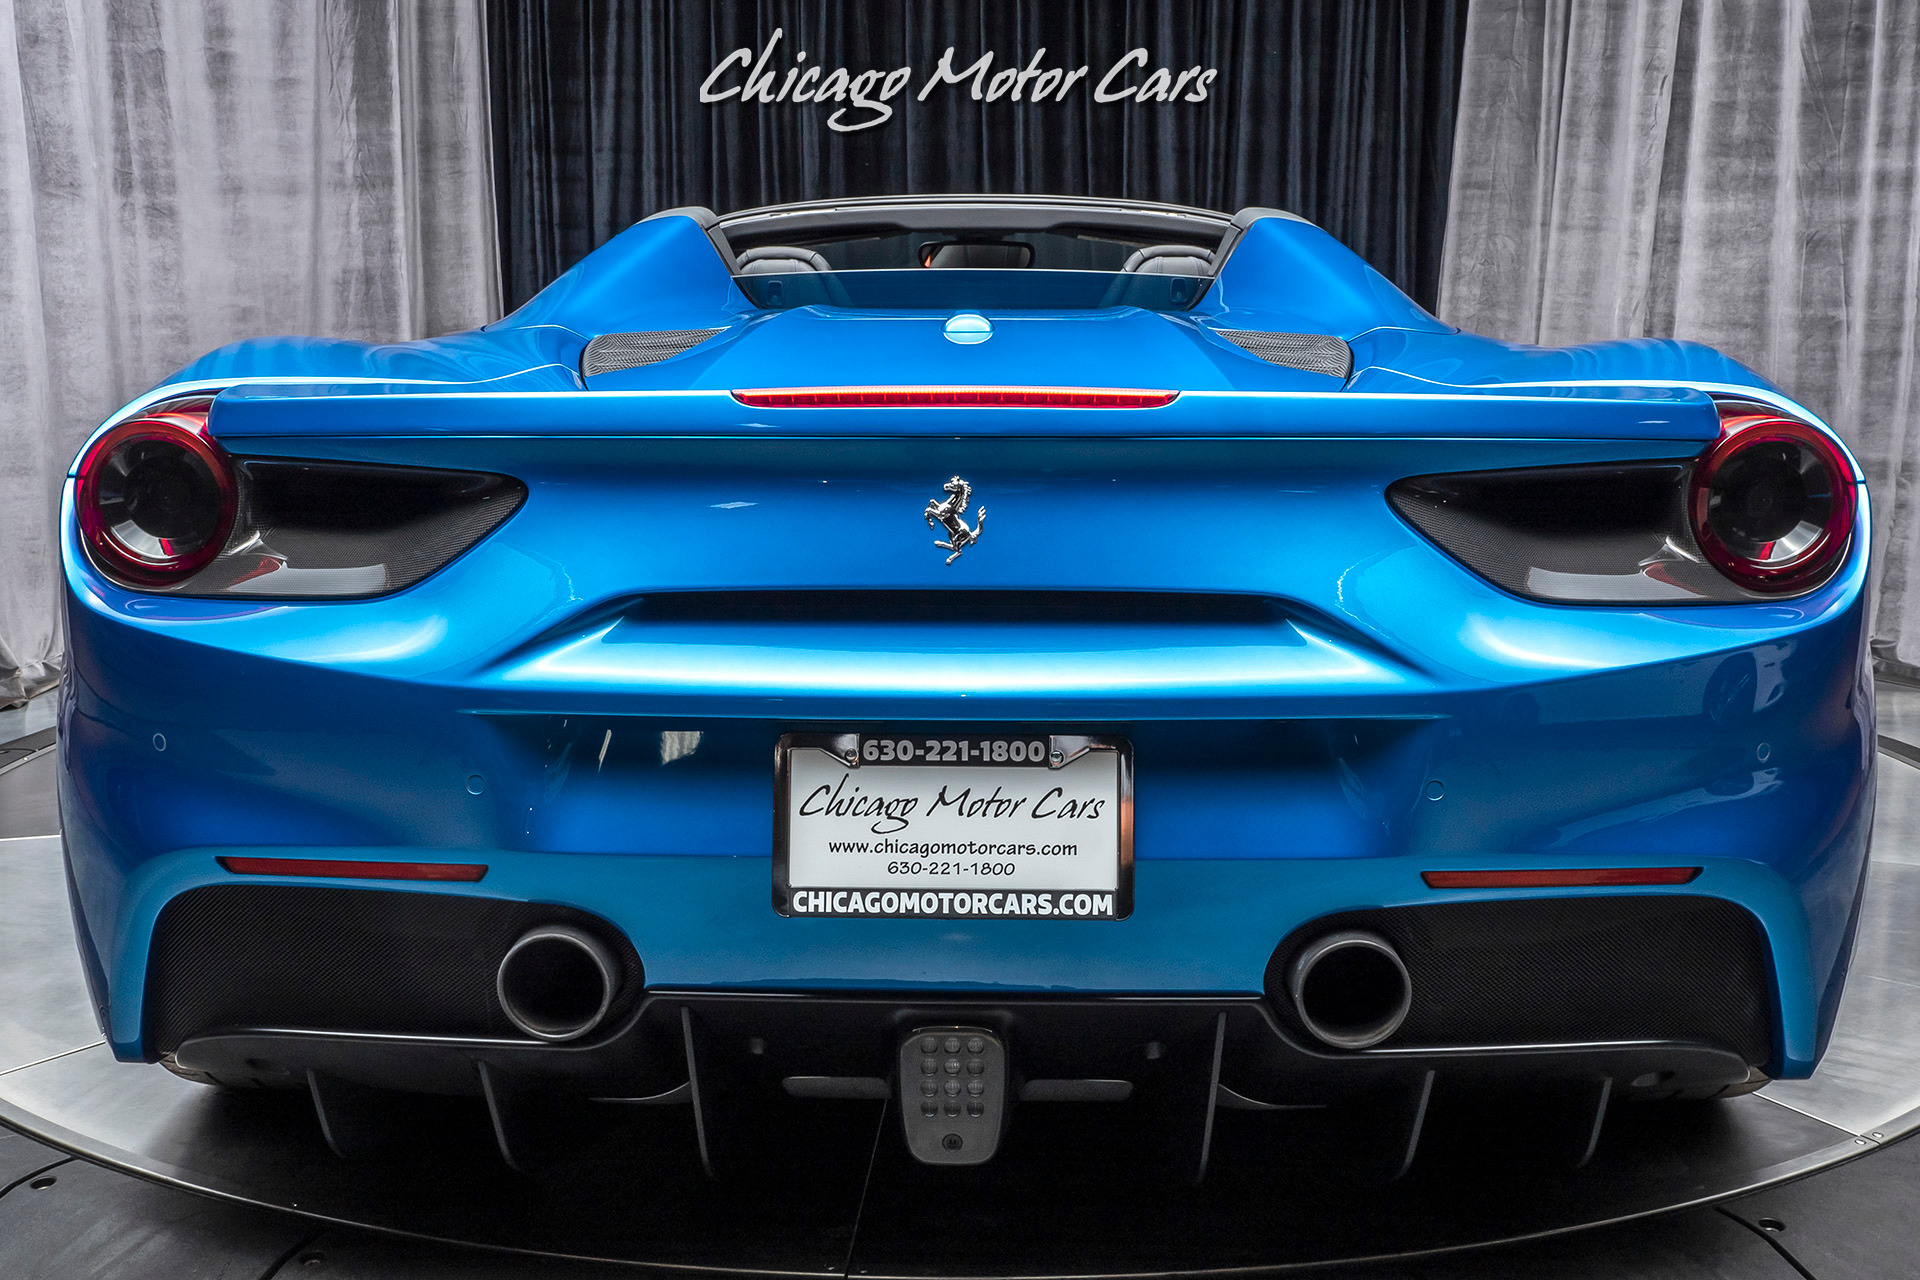 Used 2017 Ferrari 488 Spider Convertible Loaded With Thousands In Options For Sale Special Pricing Chicago Motor Cars Stock 16239